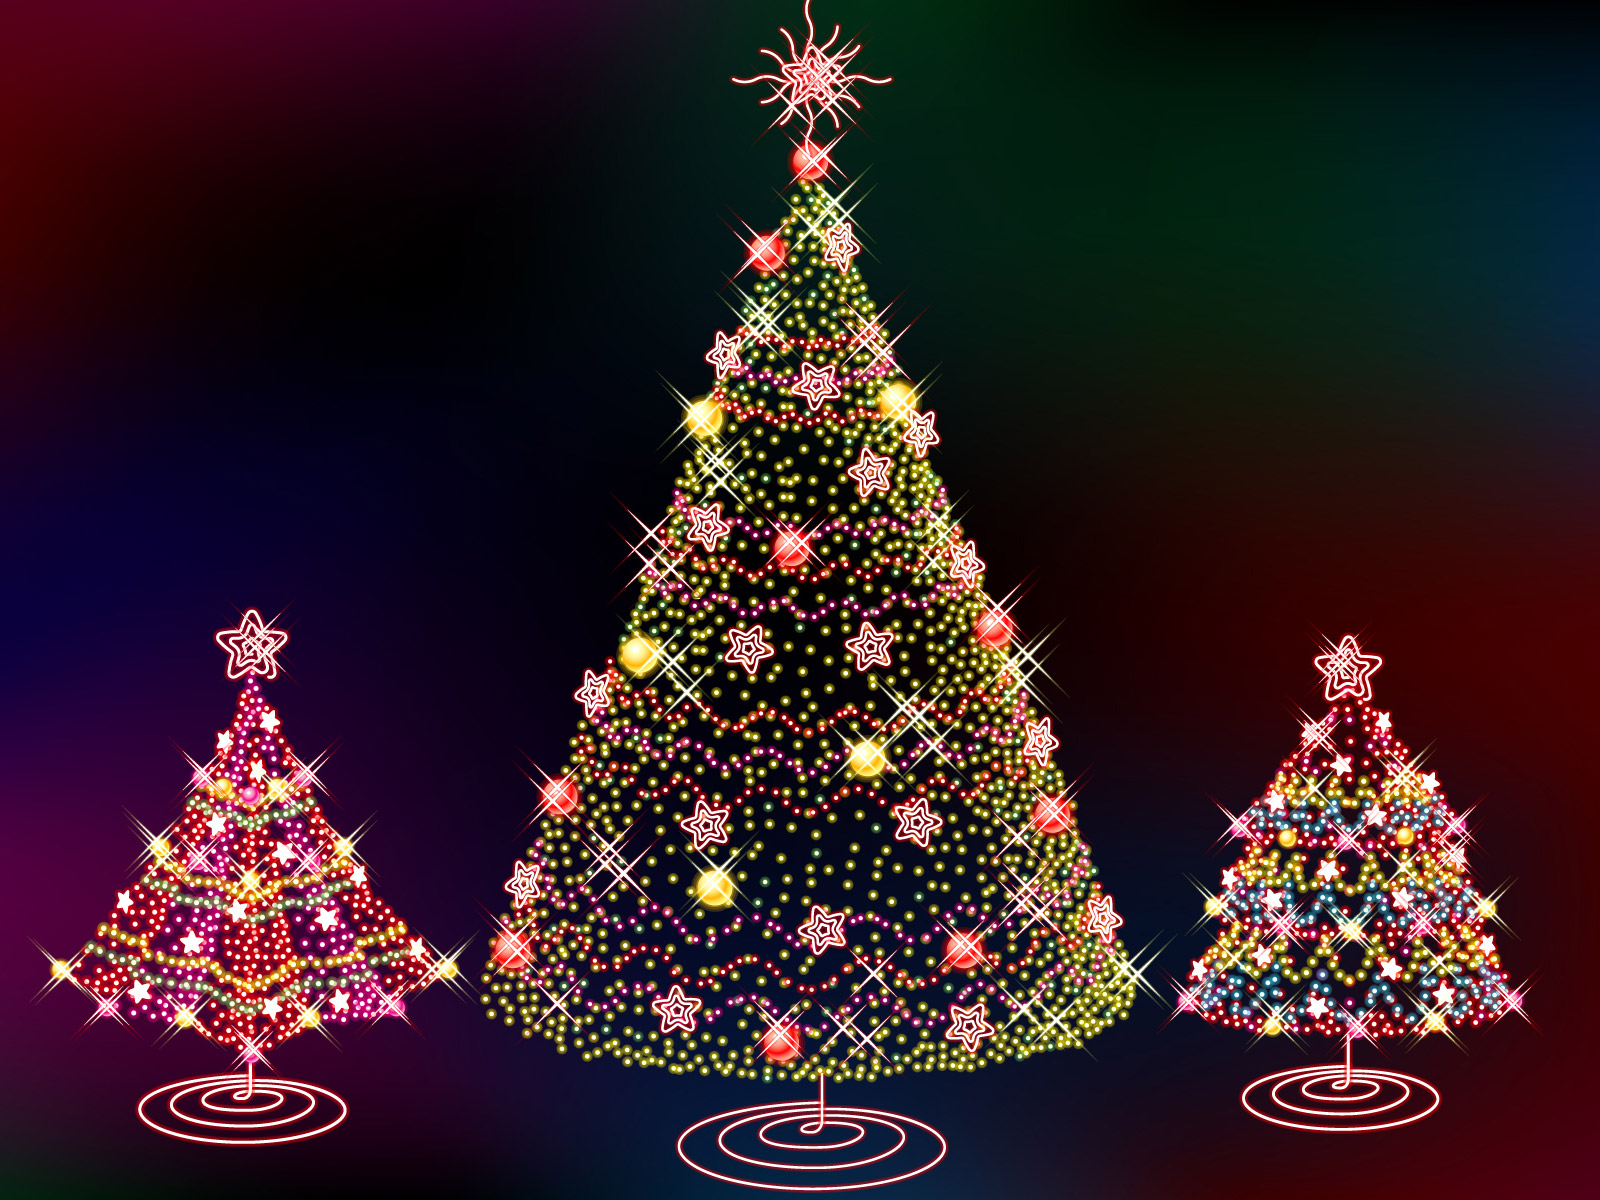 http://1.bp.blogspot.com/-r7K_MTfTx54/UJPWxL6X9HI/AAAAAAAAAe8/vmXv4AkNXqo/s1600/9-Christmas-wallpapers-free-three-christmas-trees-full-of-lights-wallpaper.jpg